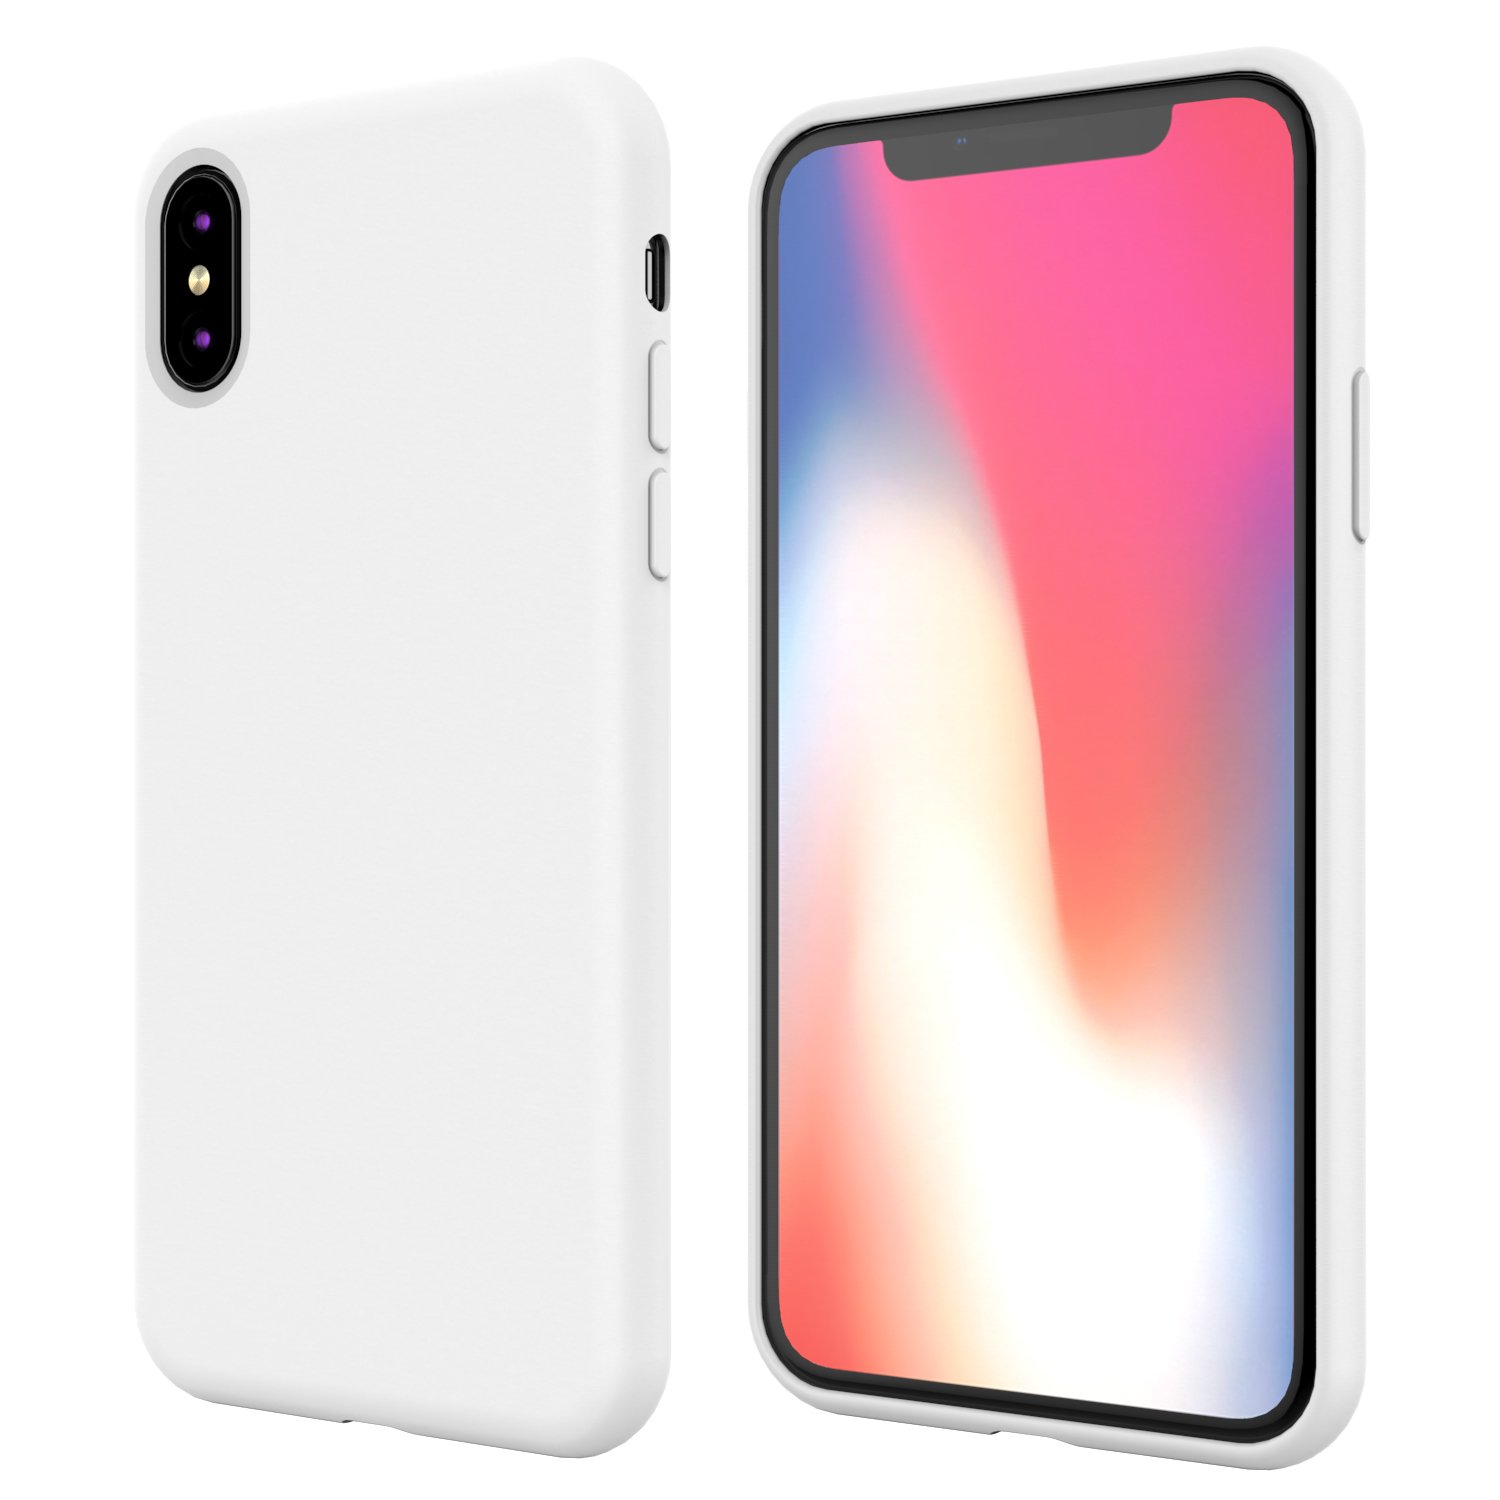 buy online 63a6f a6ab8 iPhone X Silicone Case,iPhone 10 Silicone Case,Full Body Drop Shockproof  Protection Cover Matte Case Gel Rubber Silicone Phone Case with Soft  Cushion ...